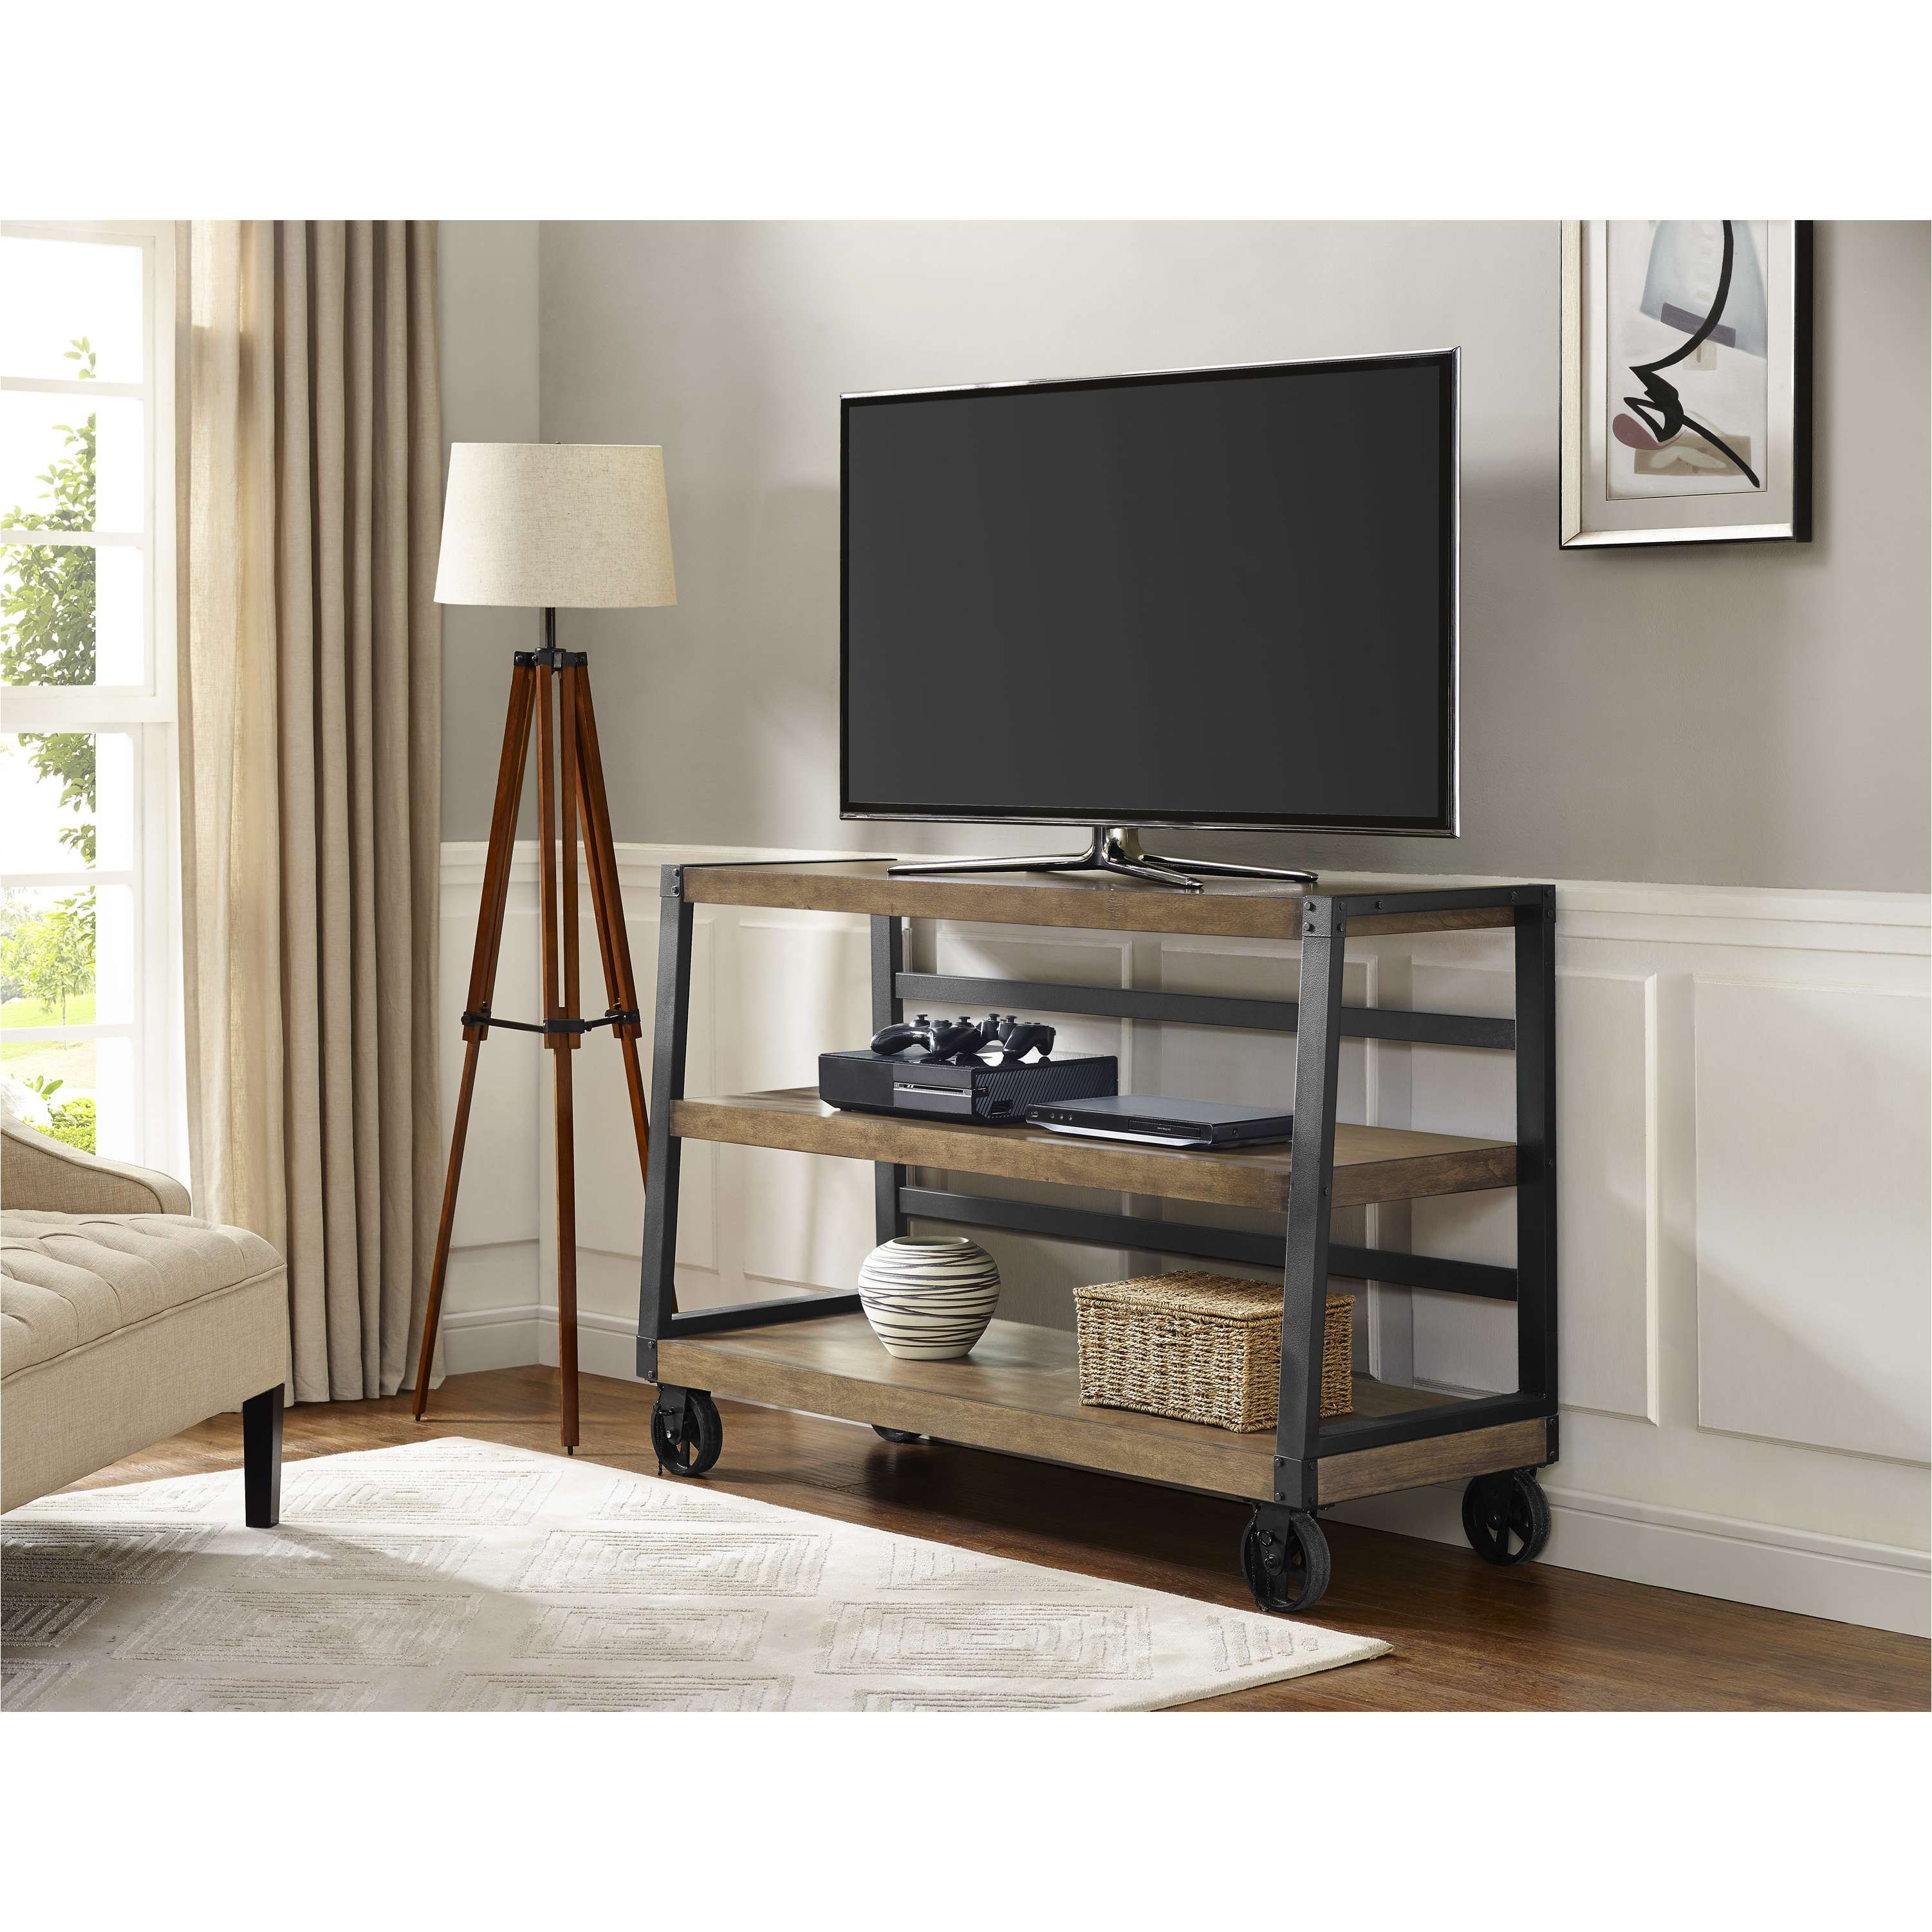 Decorating: Whalen Furniture Mfg Inc | Whalen Tv Stands | Whalen For Classy Tv Stands (View 11 of 20)